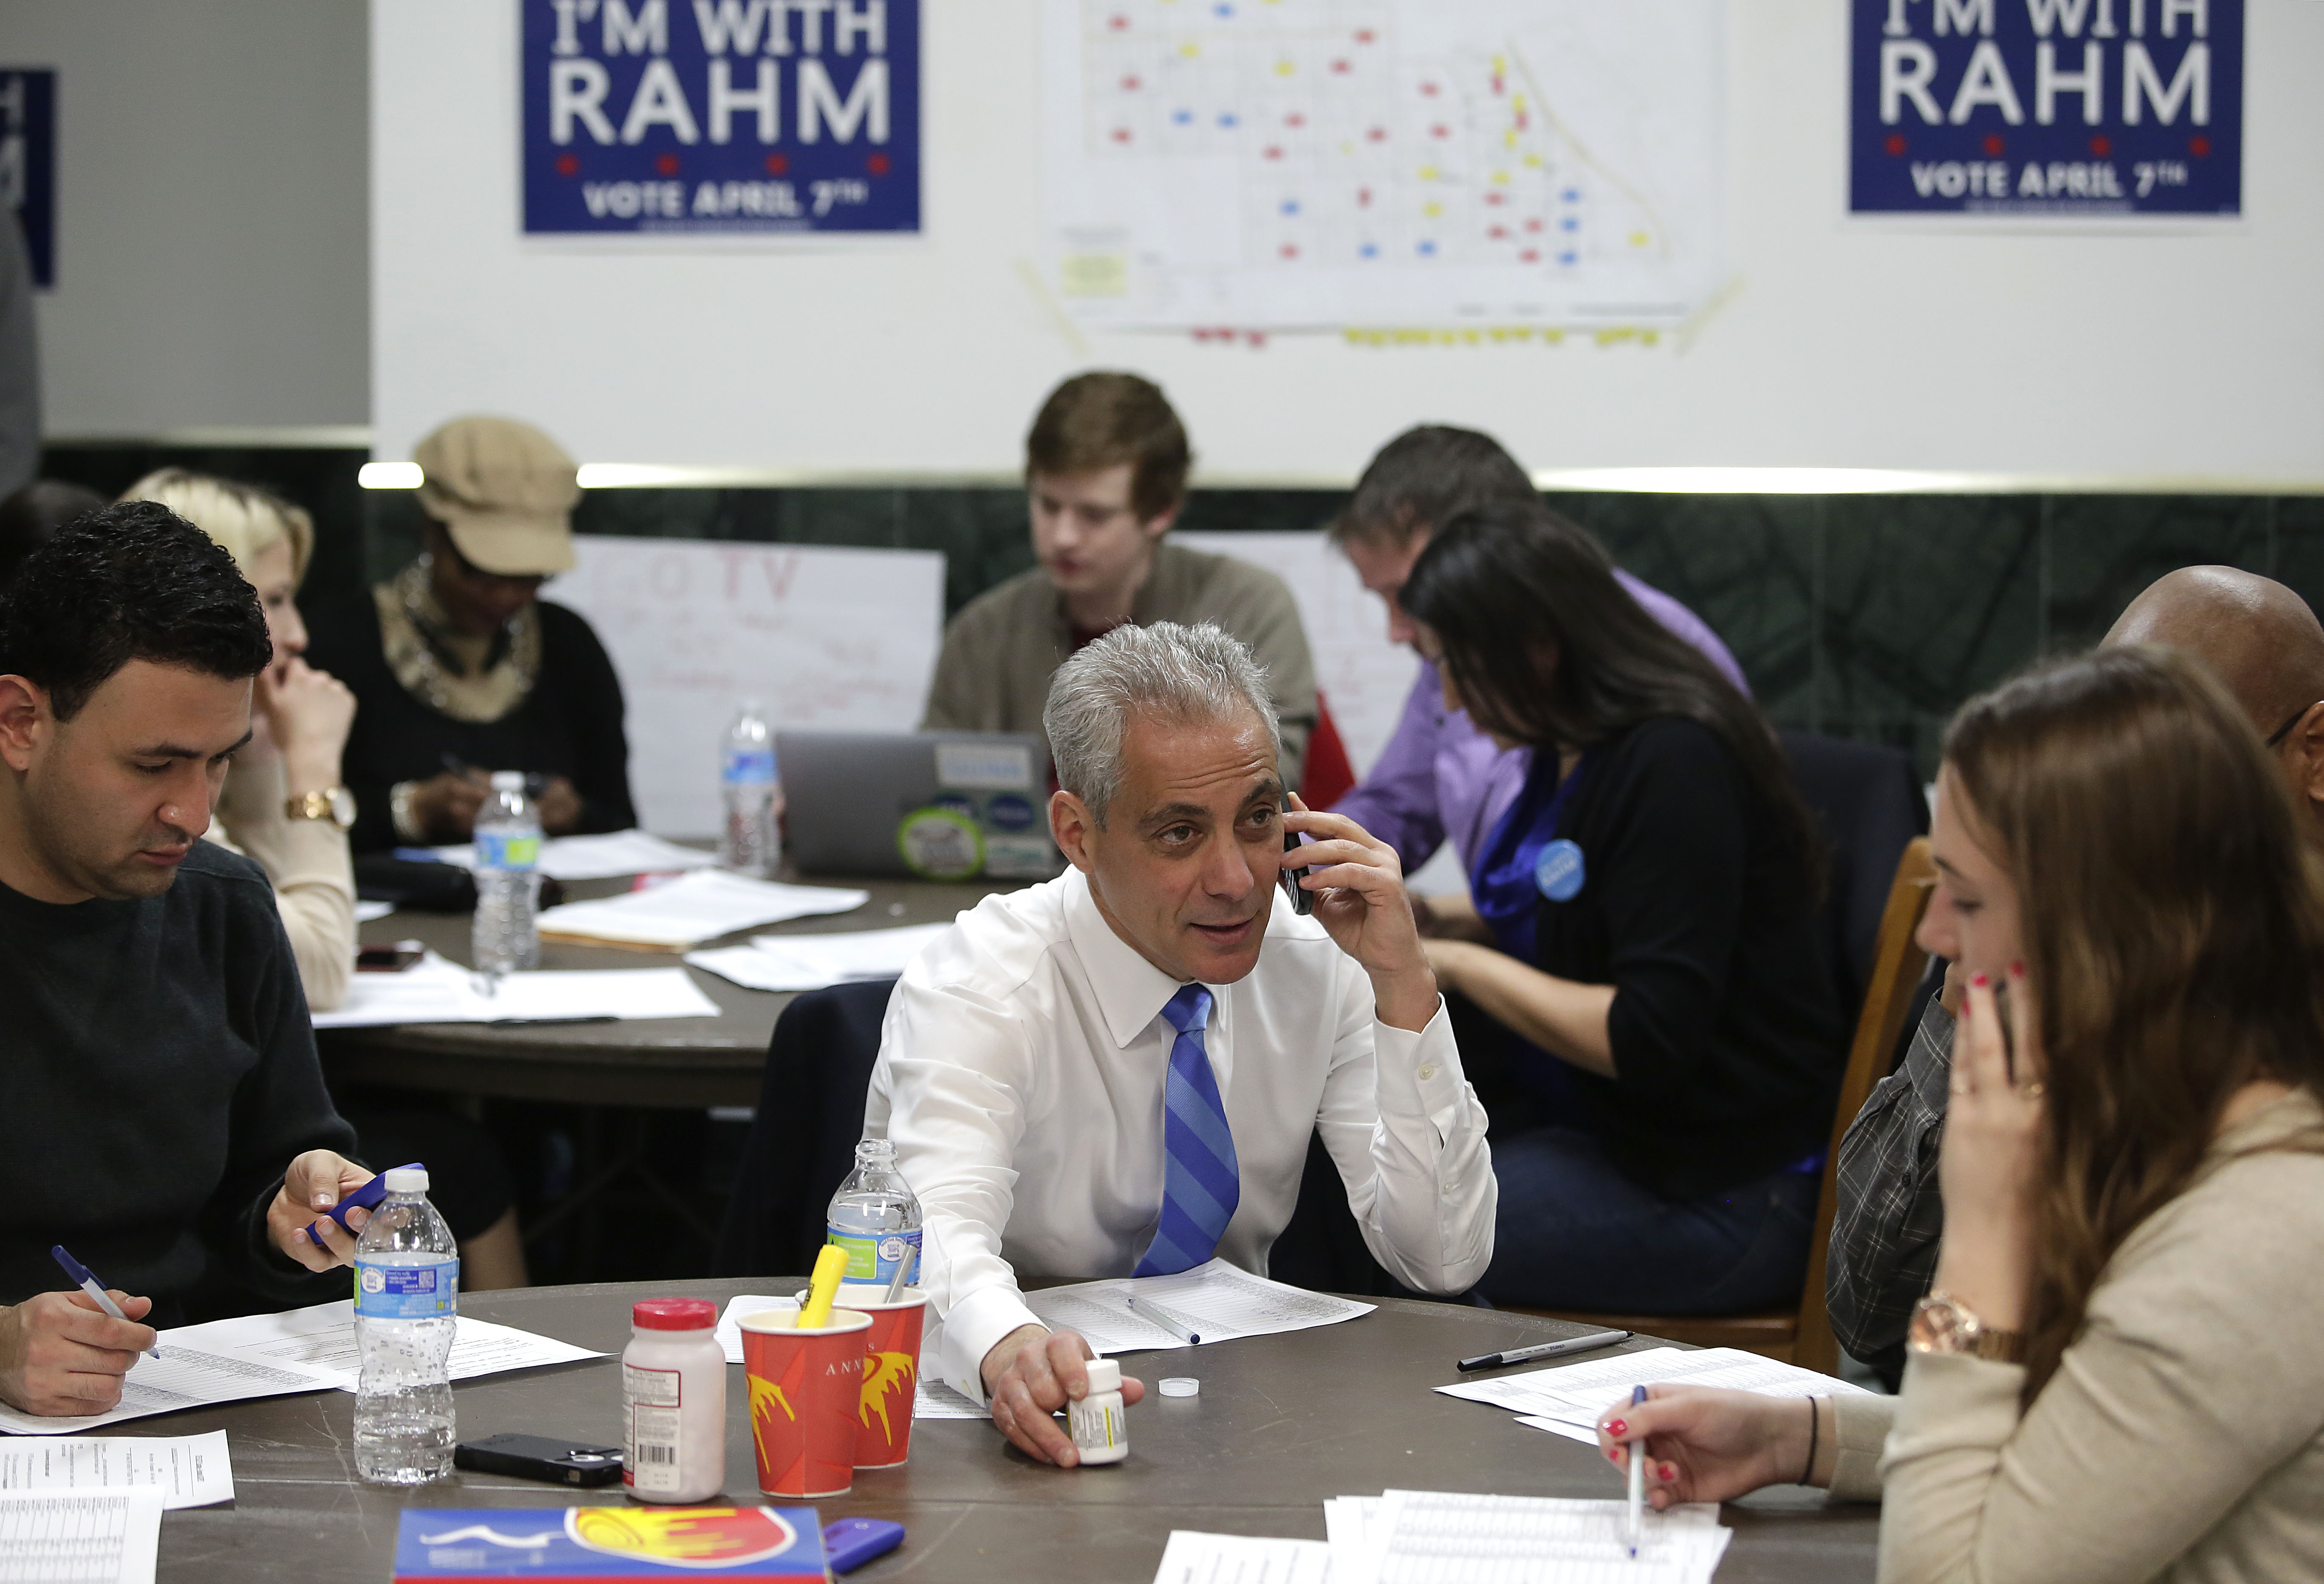 Chicago's mayor and candidate for re-election Rahm Emanuel, center, calla a voter on a mobile phone to remind them to vote during the election as he sits with his campaign workers April 6, 2015 in Chicago, Illinois.